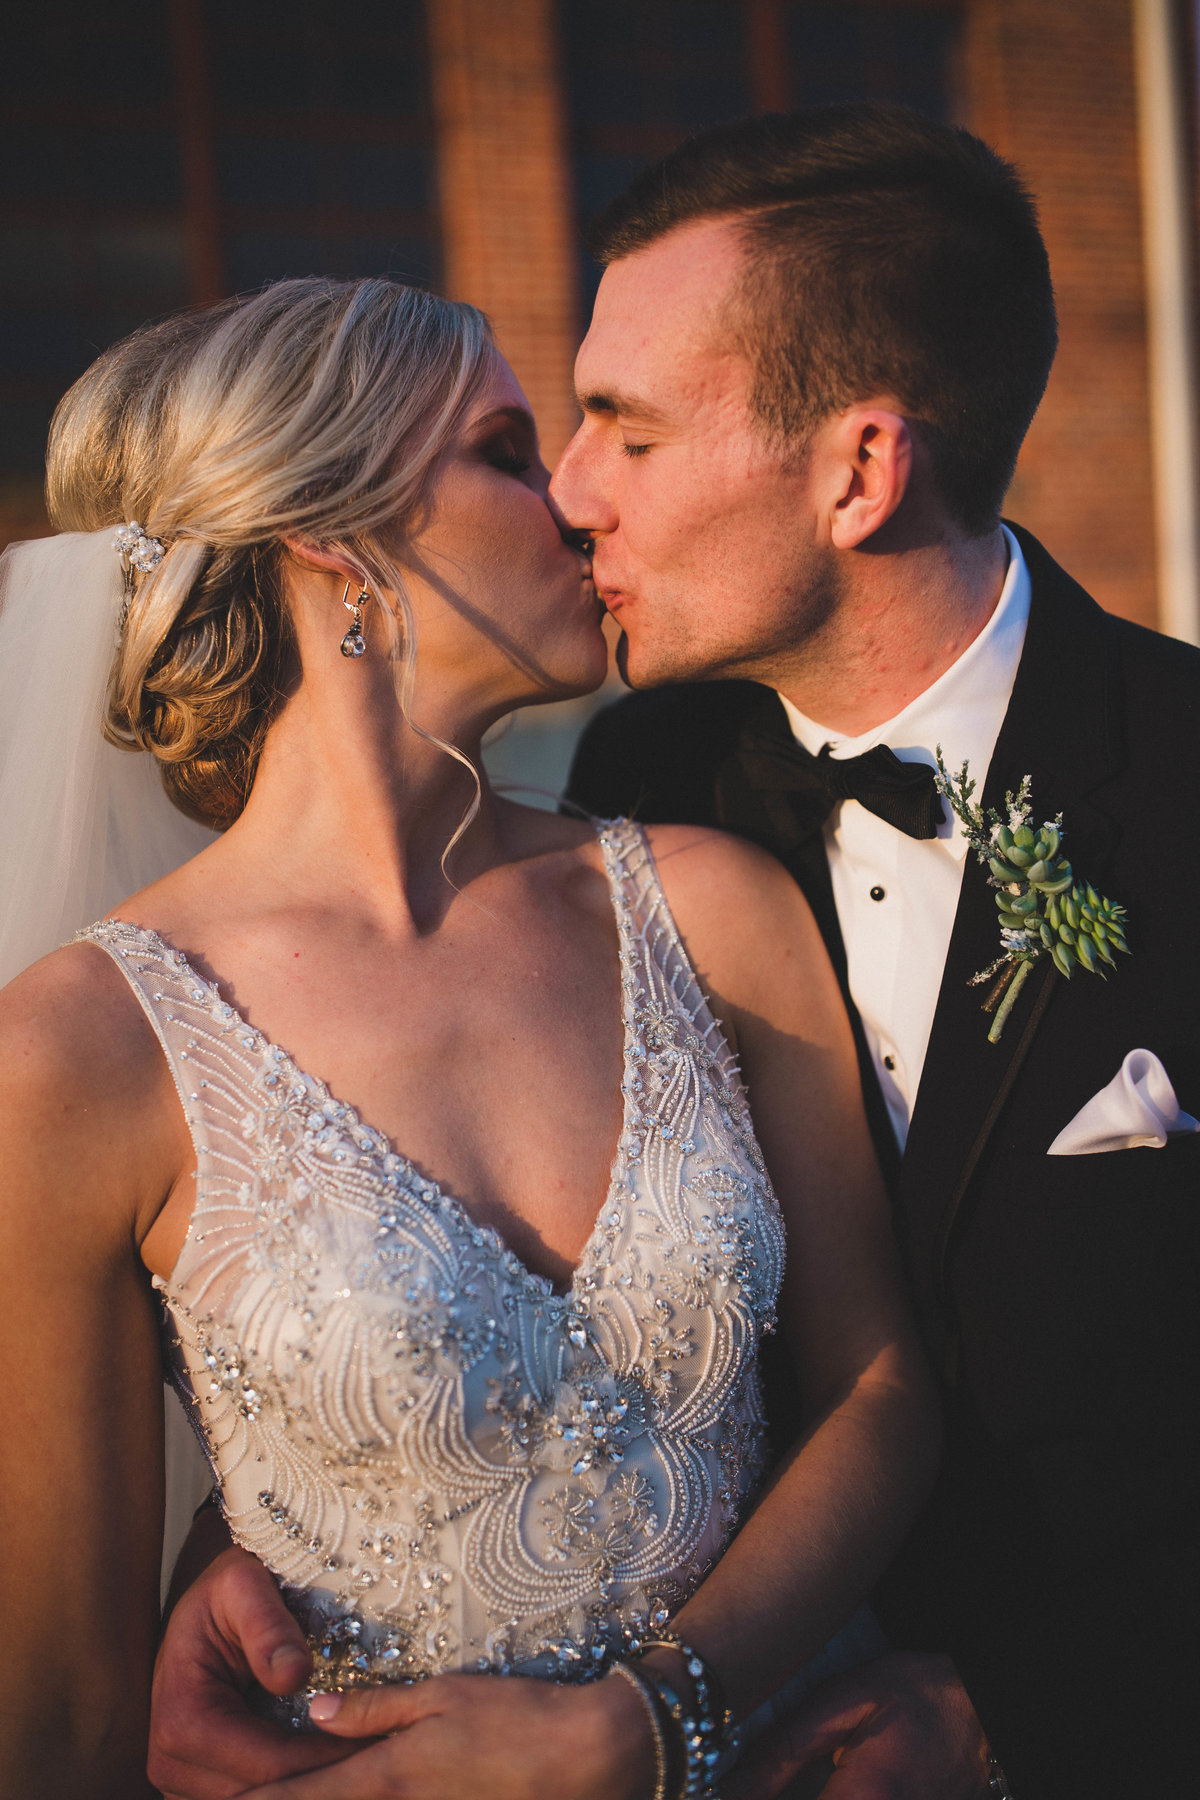 sunset-kiss-southwest-virginia-wedding